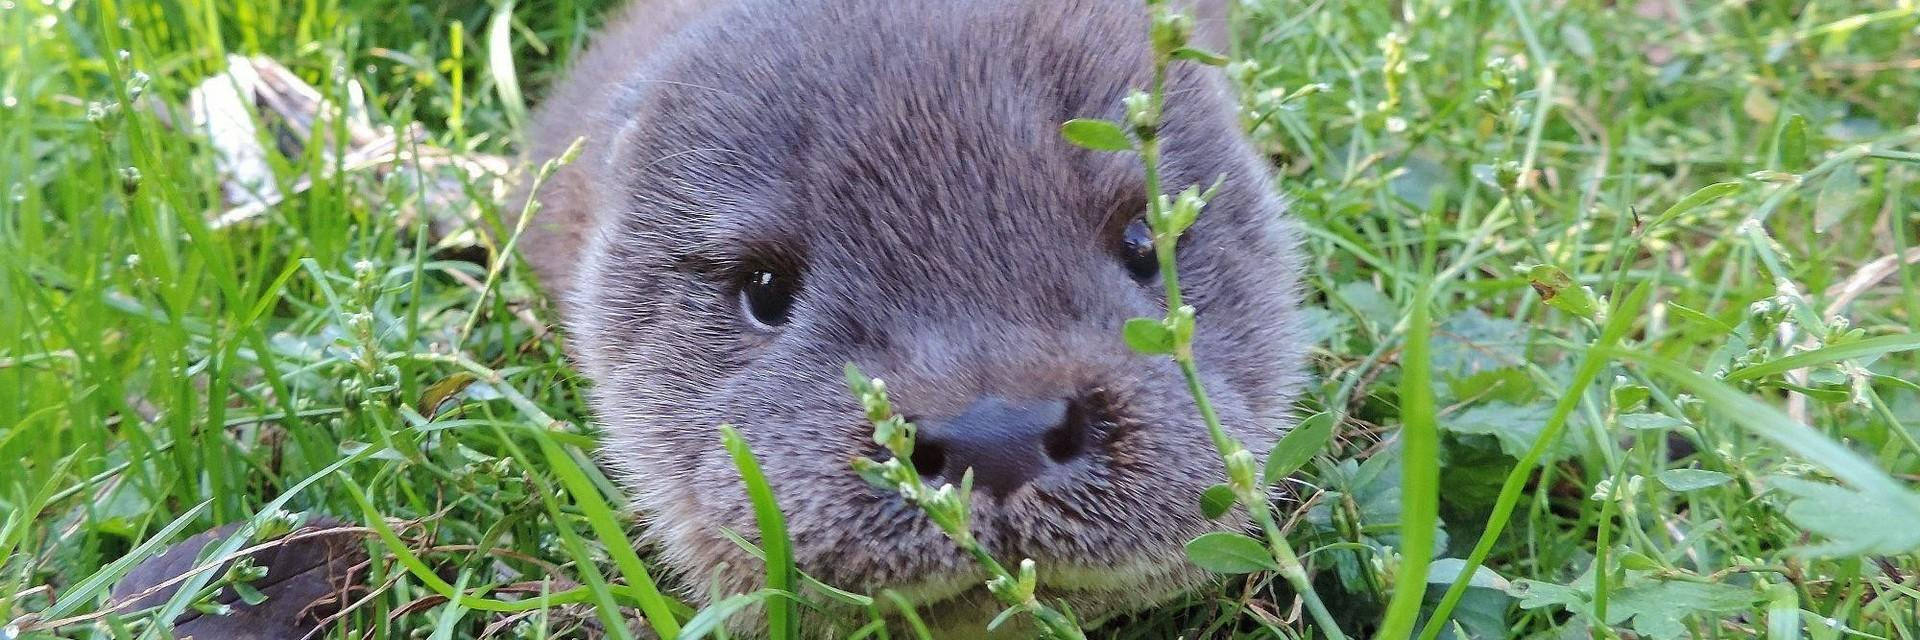 Otter in Haringsee